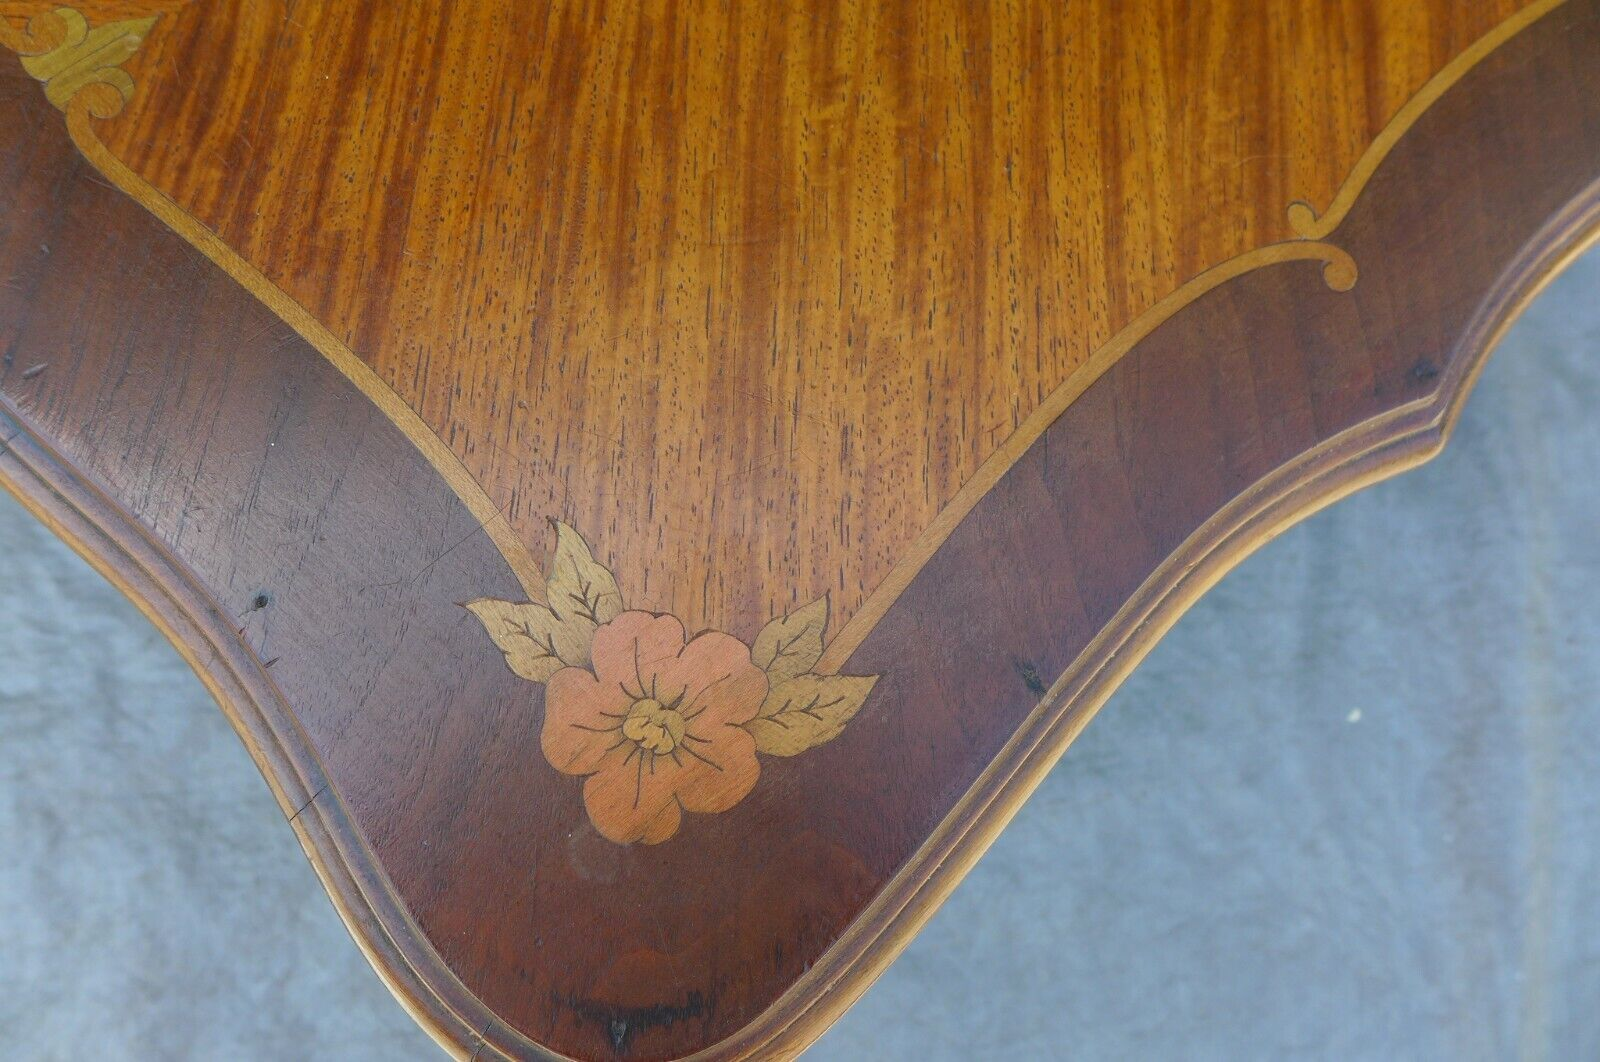 Italian Inlaid Marquetry Petite Coffee Table Floral Design Carved Leg Vintage - $399.00